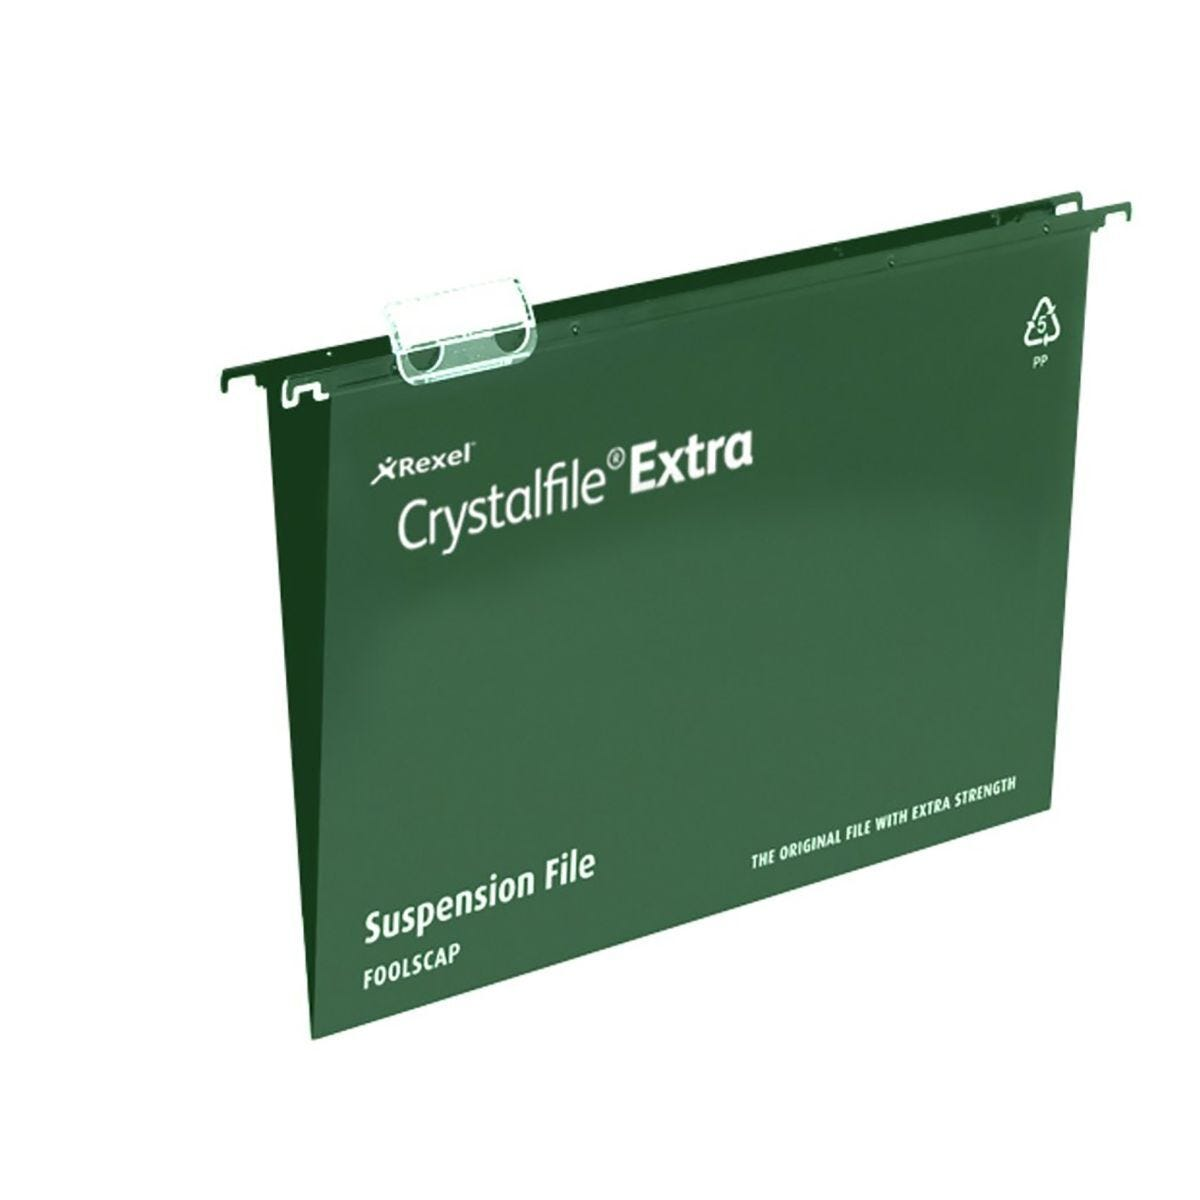 Rexel Crystalfile Extra A4 Suspension File 15mm Pack of 25 Green